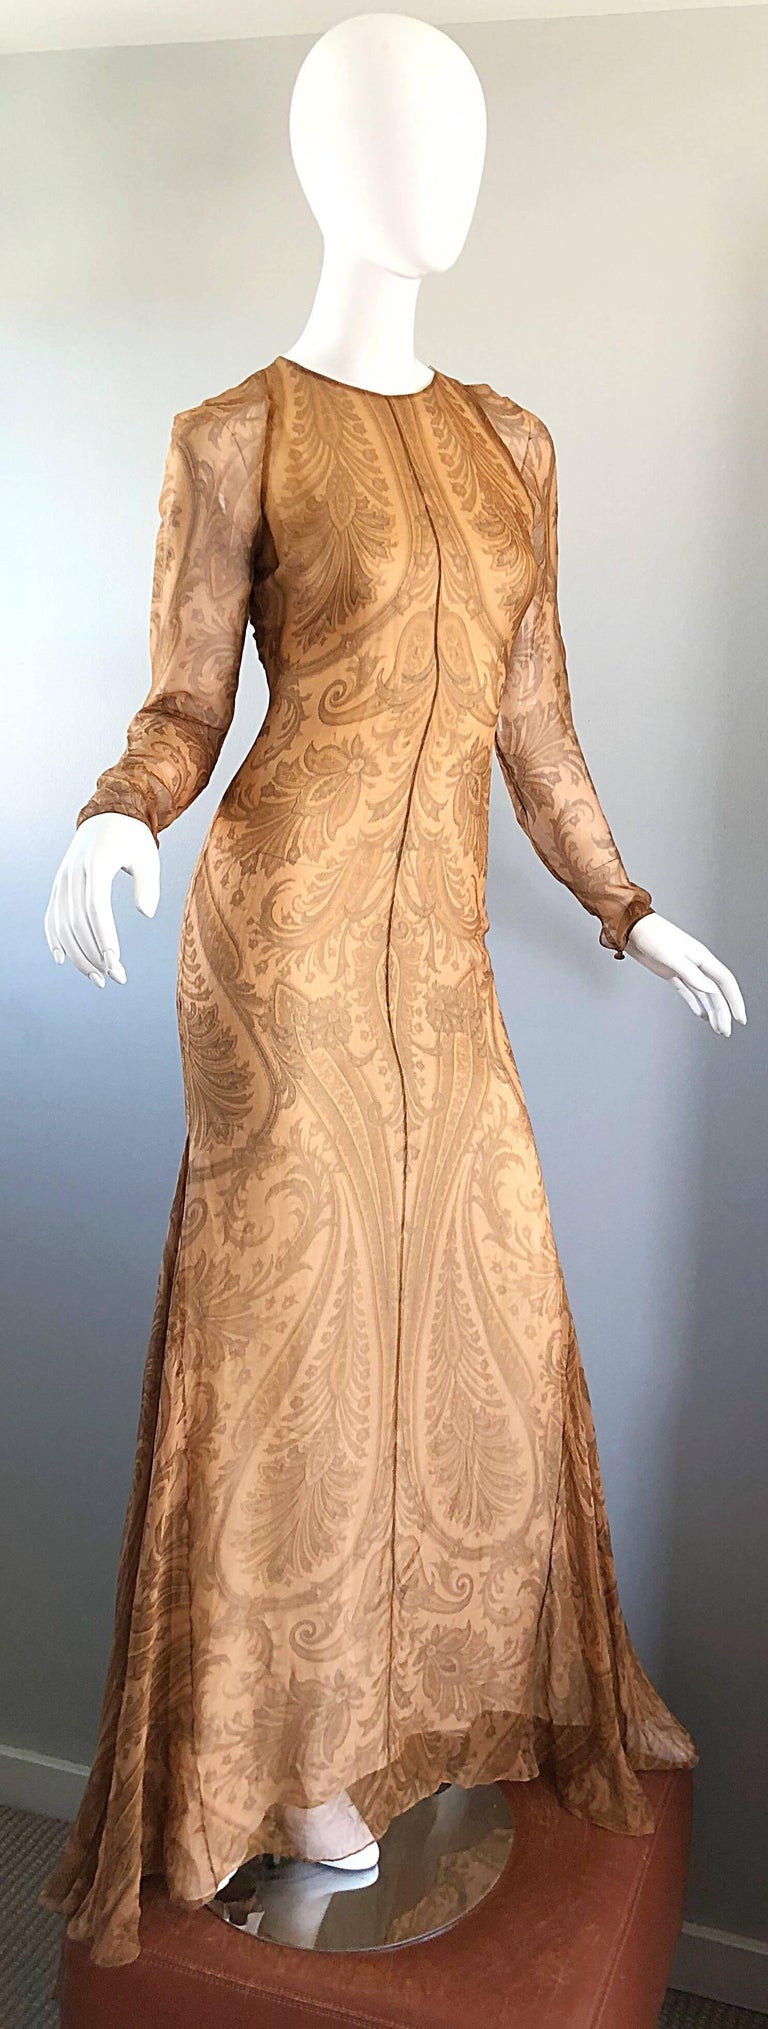 Sensational 1990s Bill Blass Couture Nude Silk Chiffon Paisley Vintage 90s Gown  For Sale 7